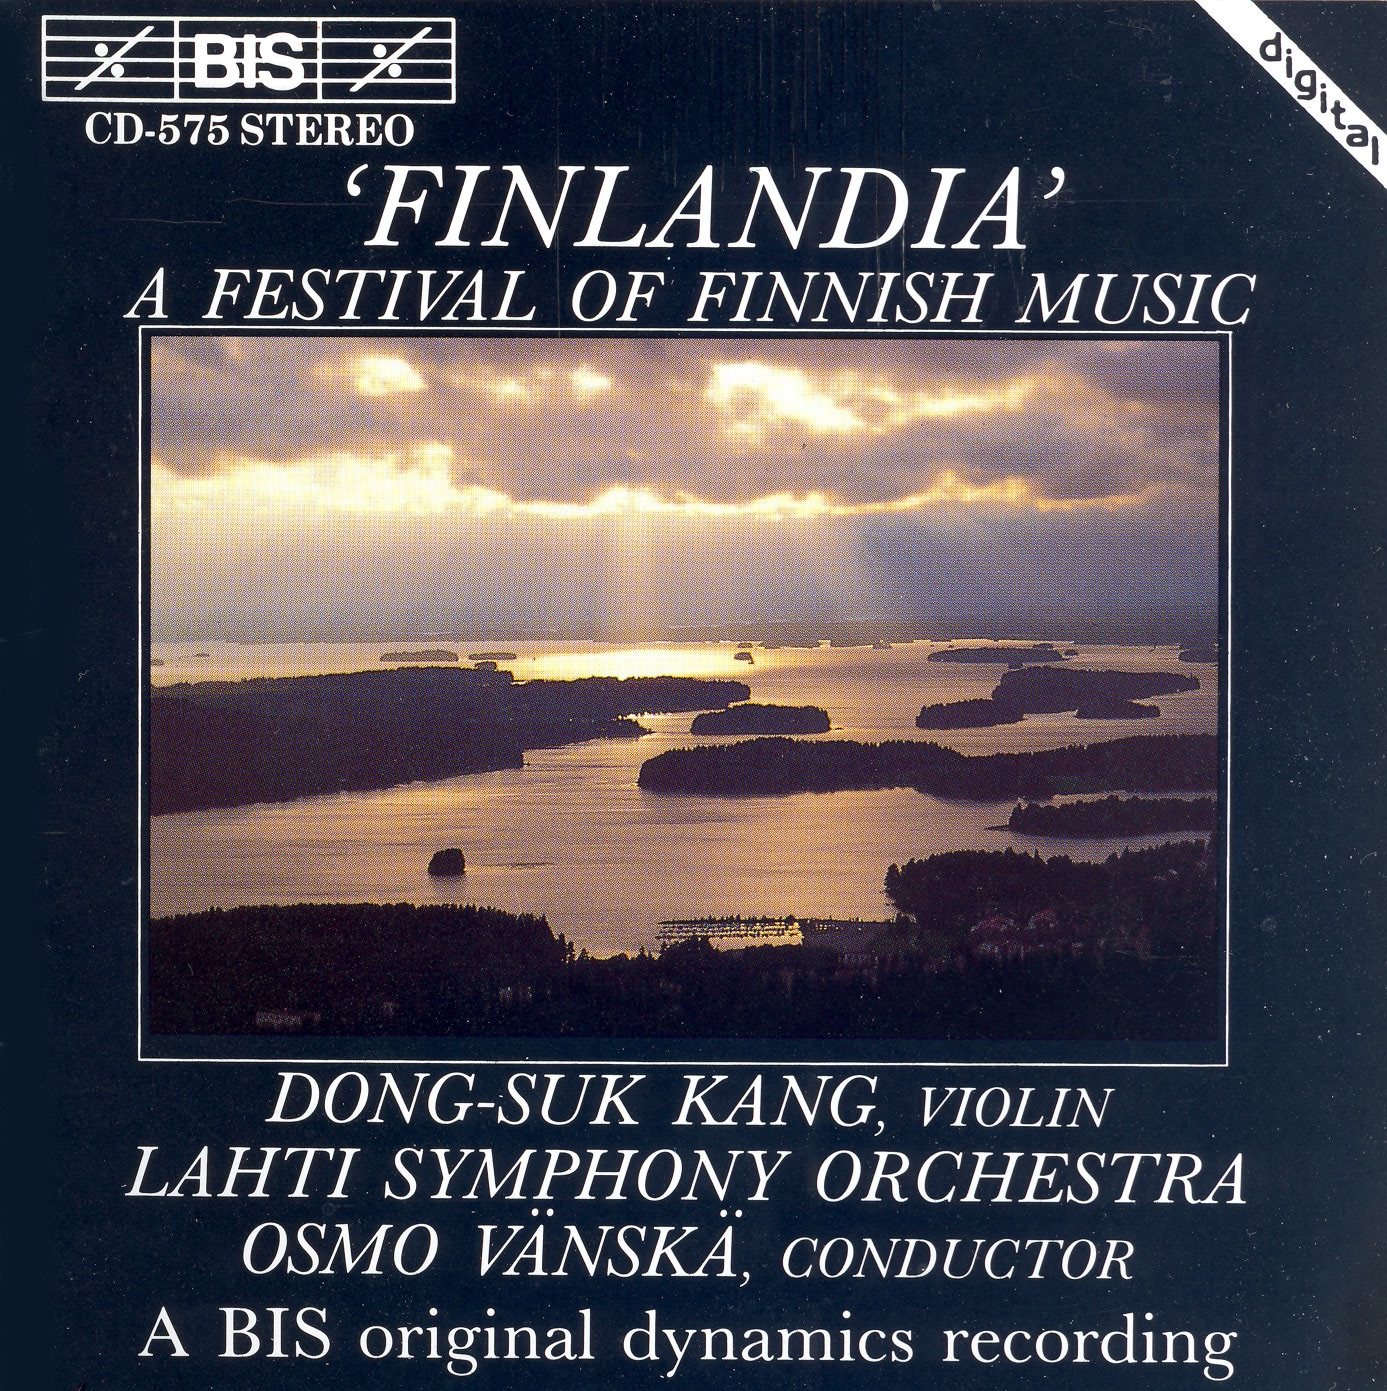 Suite for Violin and String Orchestra, Op. 117: II. Evening In Spring, Op. 117 No. 2